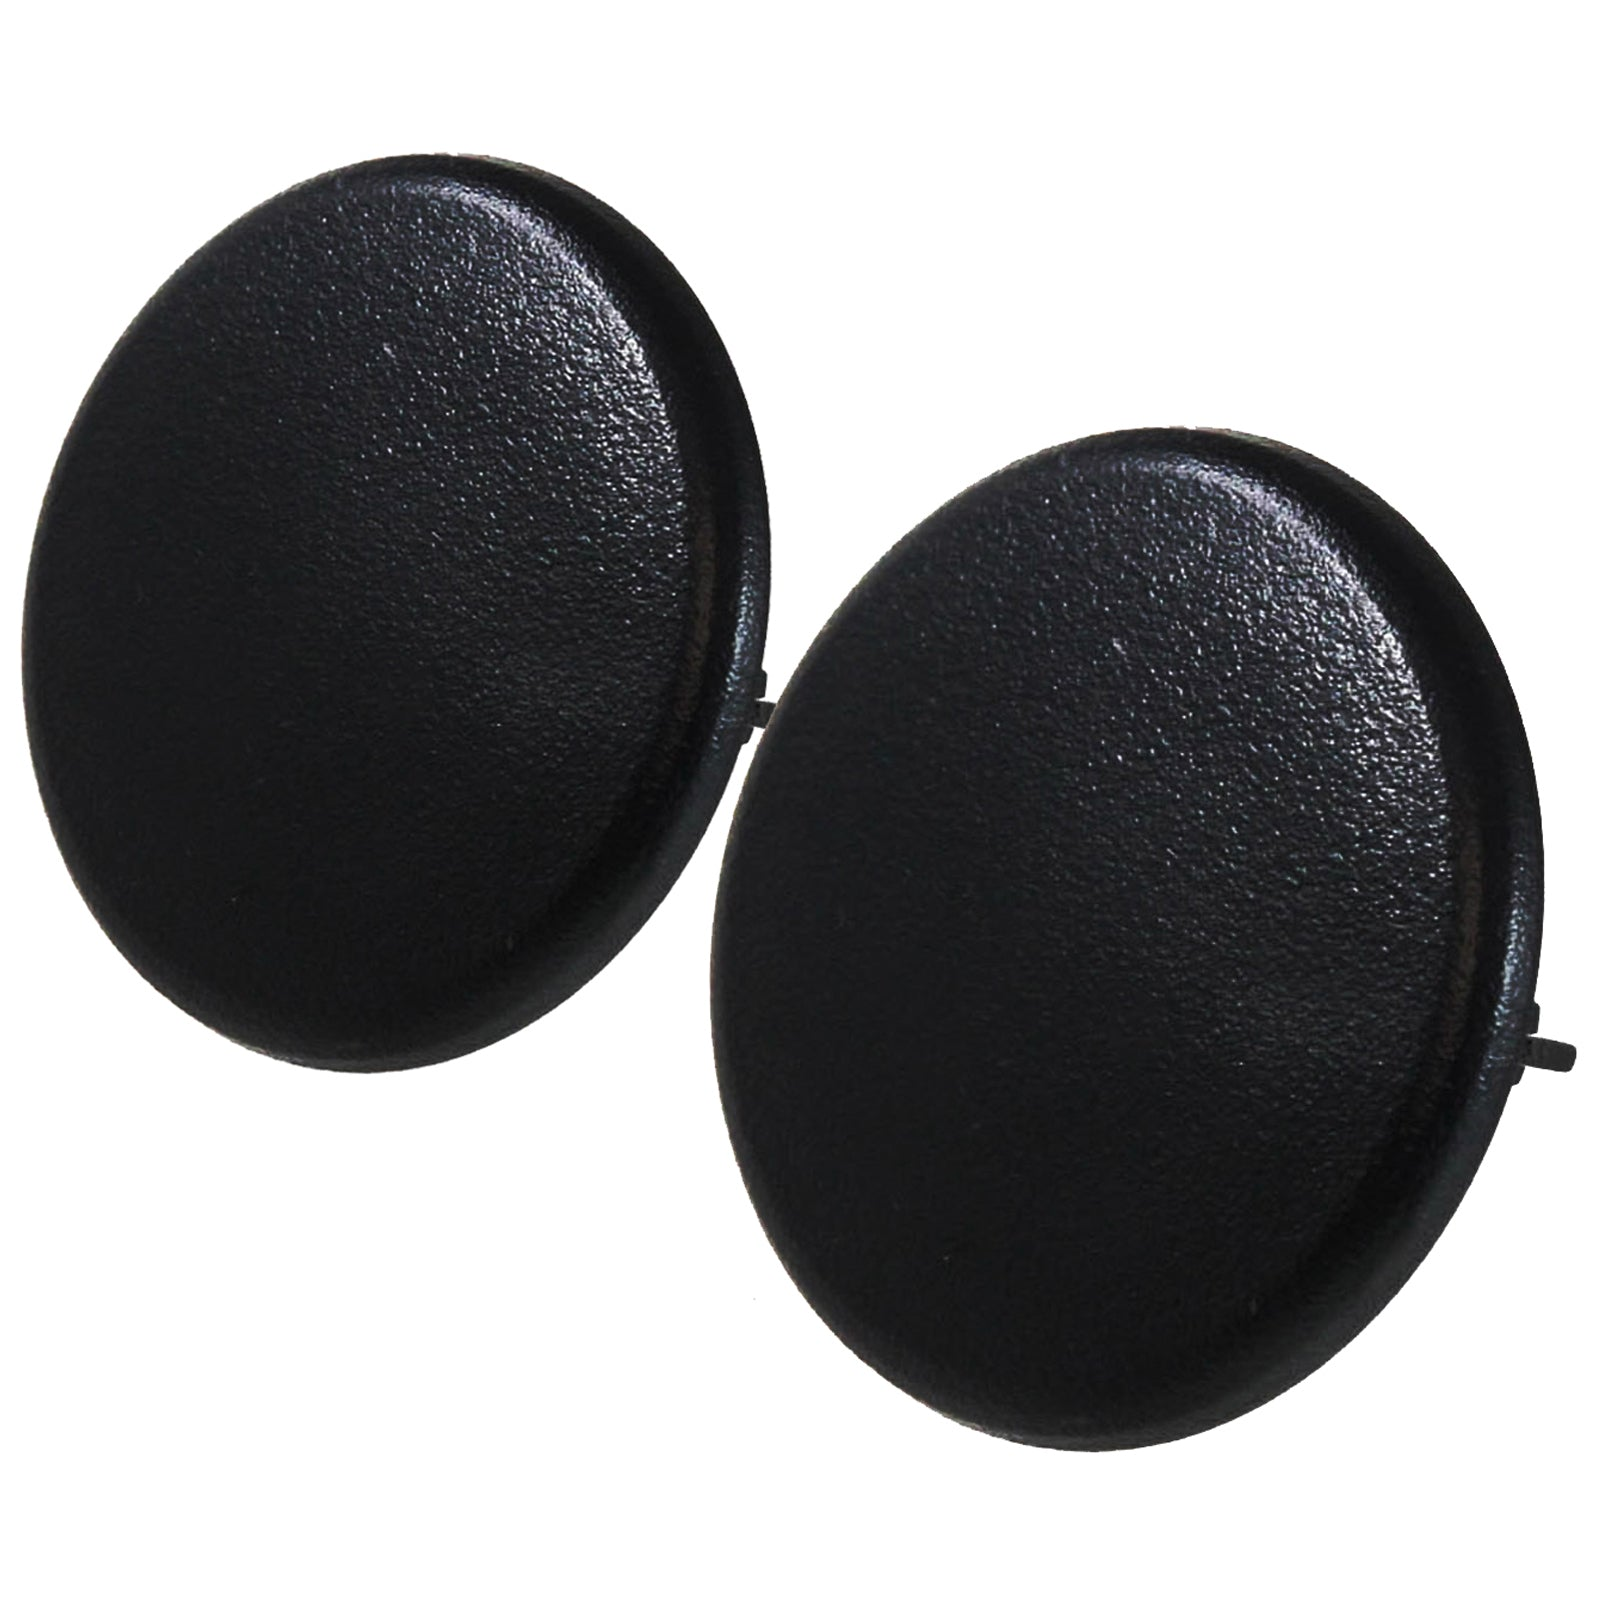 2 Rear Armrest Cover Caps Black Ebony 2007-2014 Compatible with GM Trucks & SUVs Arm Rest Snap New